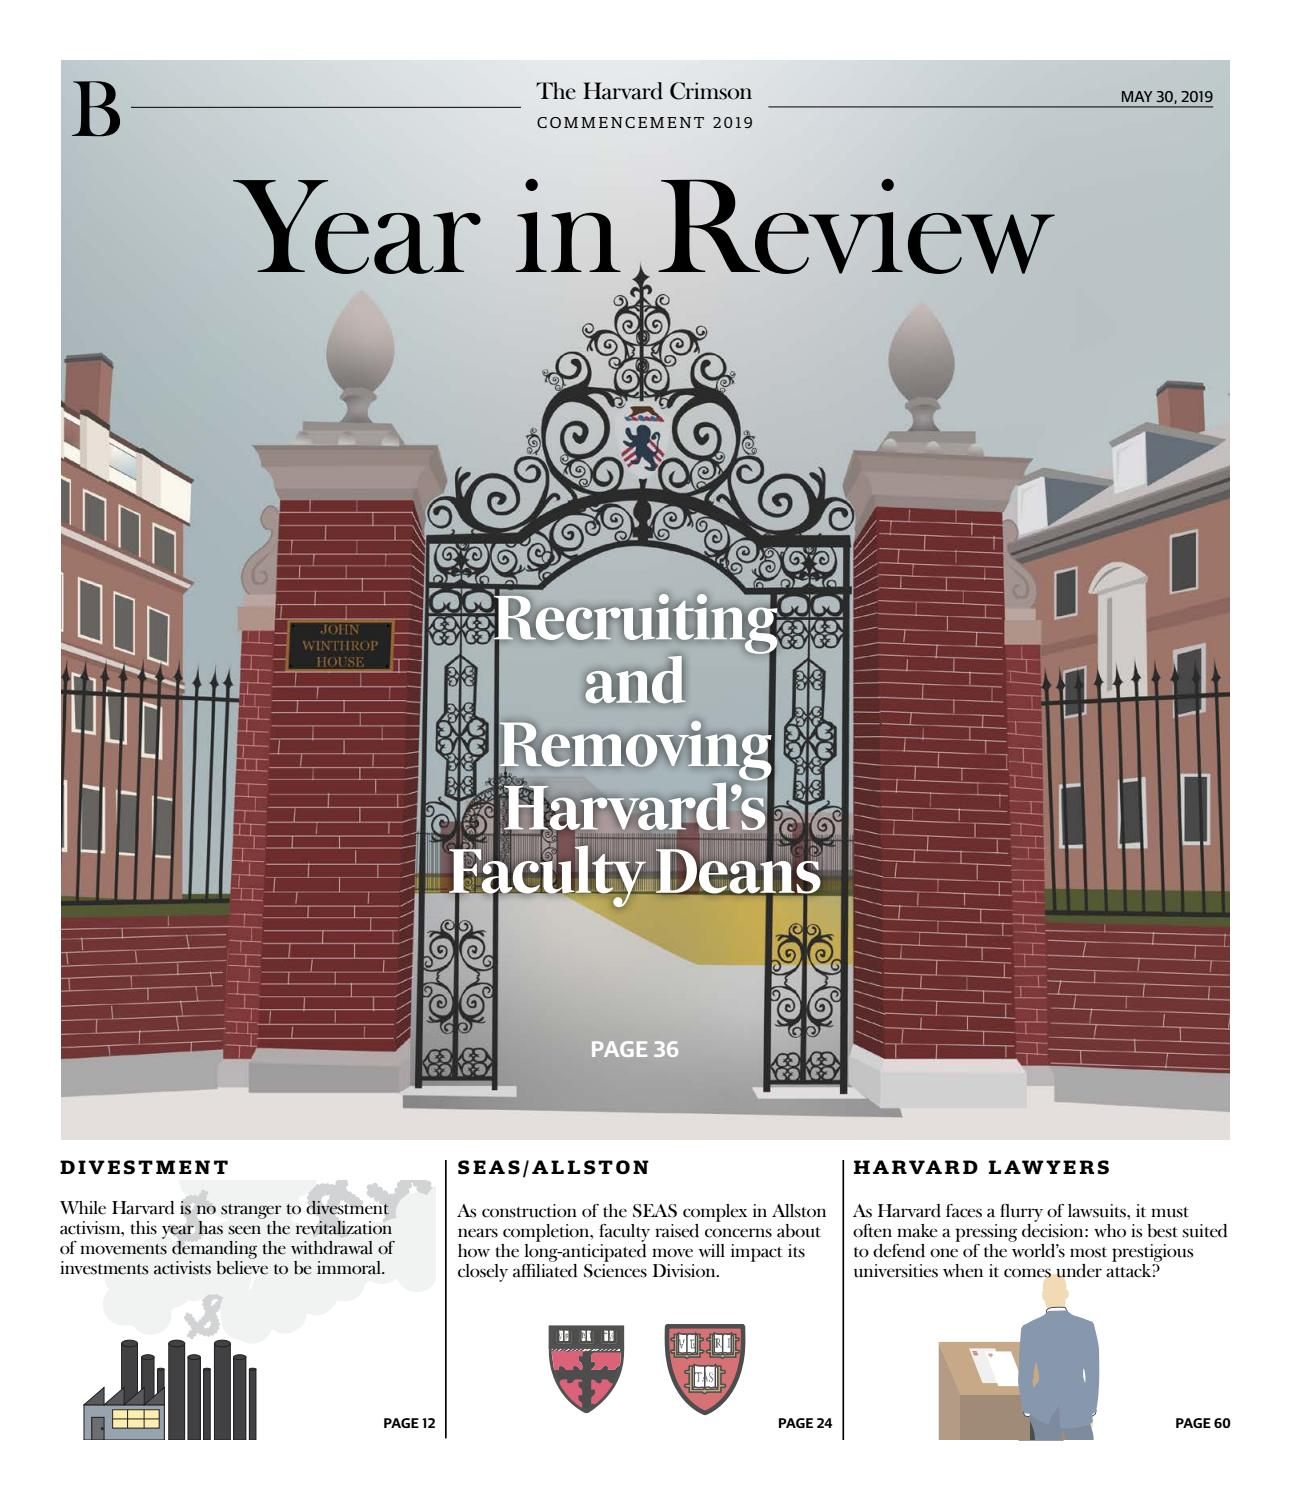 Year In Review 2019 by The Harvard Crimson - issuu